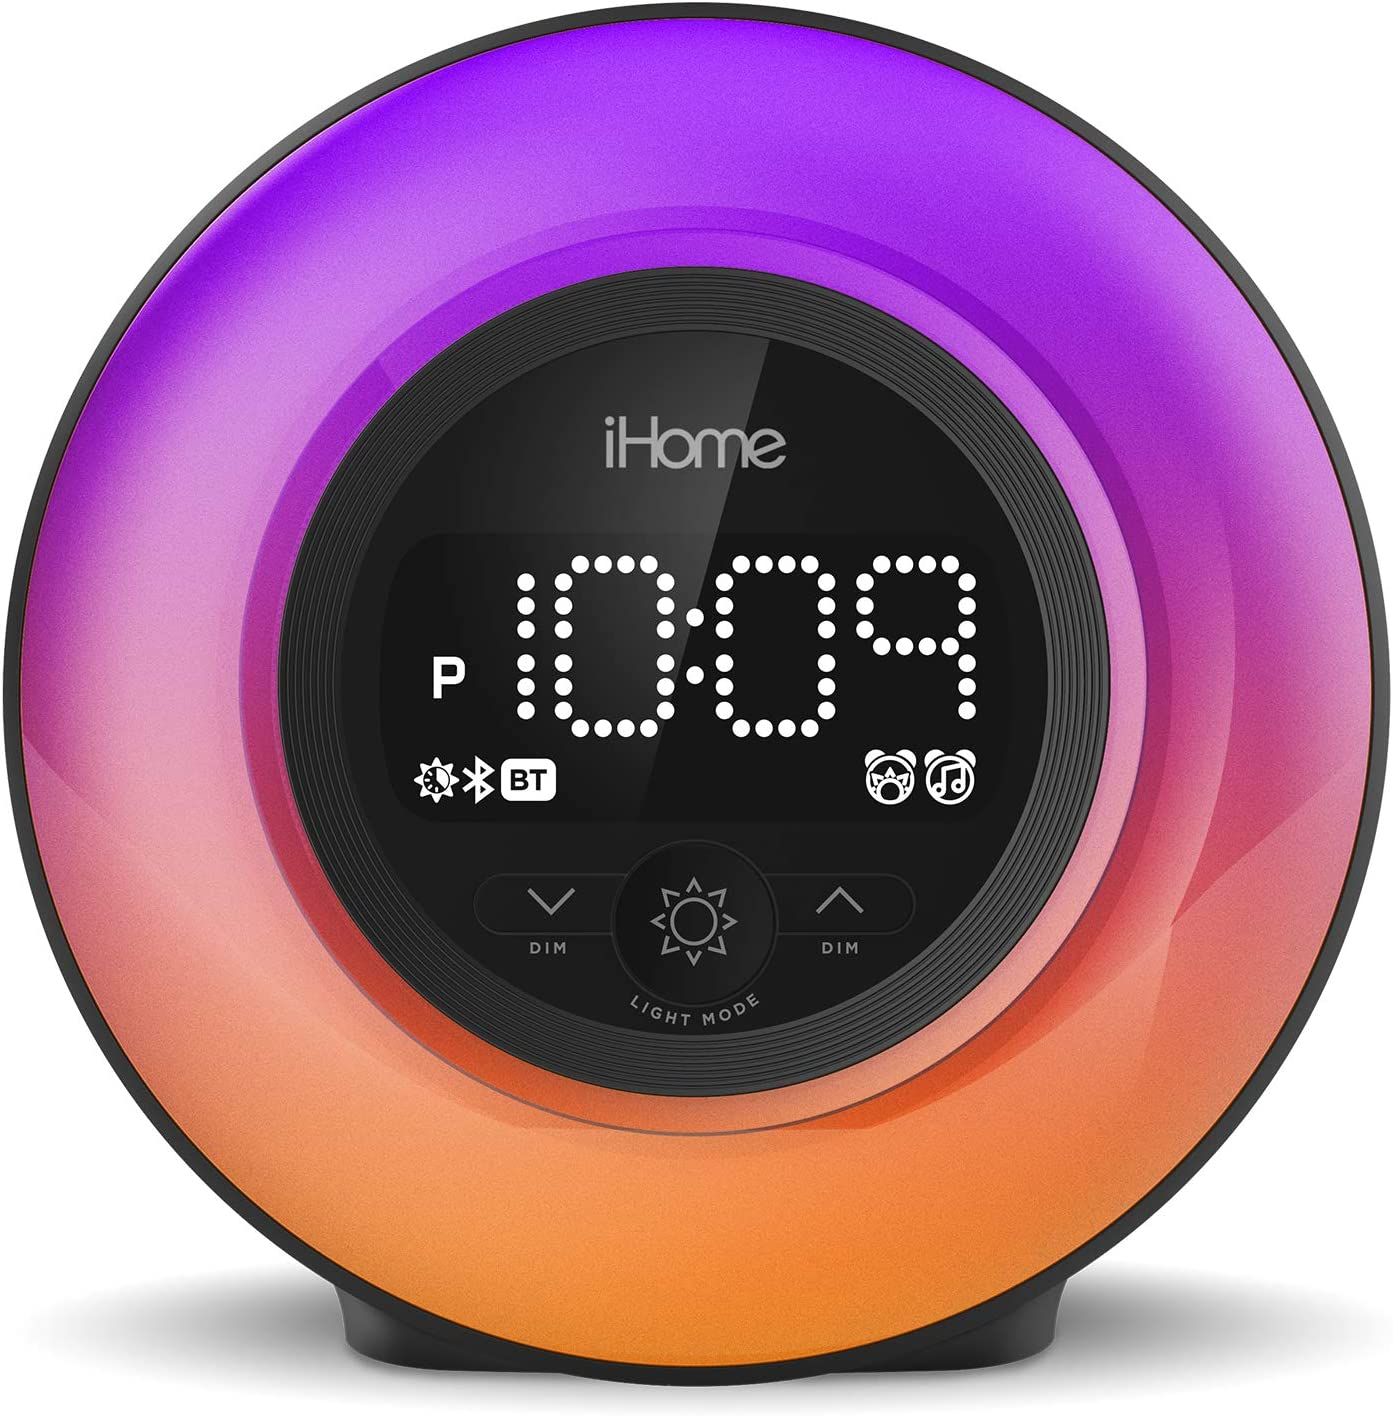 iHome PowerClock Glow Alarm Clock - Bluetooth Color Changing FM Clock Radio with USB Charging Port, Dimmable Display and 7-5-2 Dual Alarm - Perfect for Bedside Tables (Model iBT295)